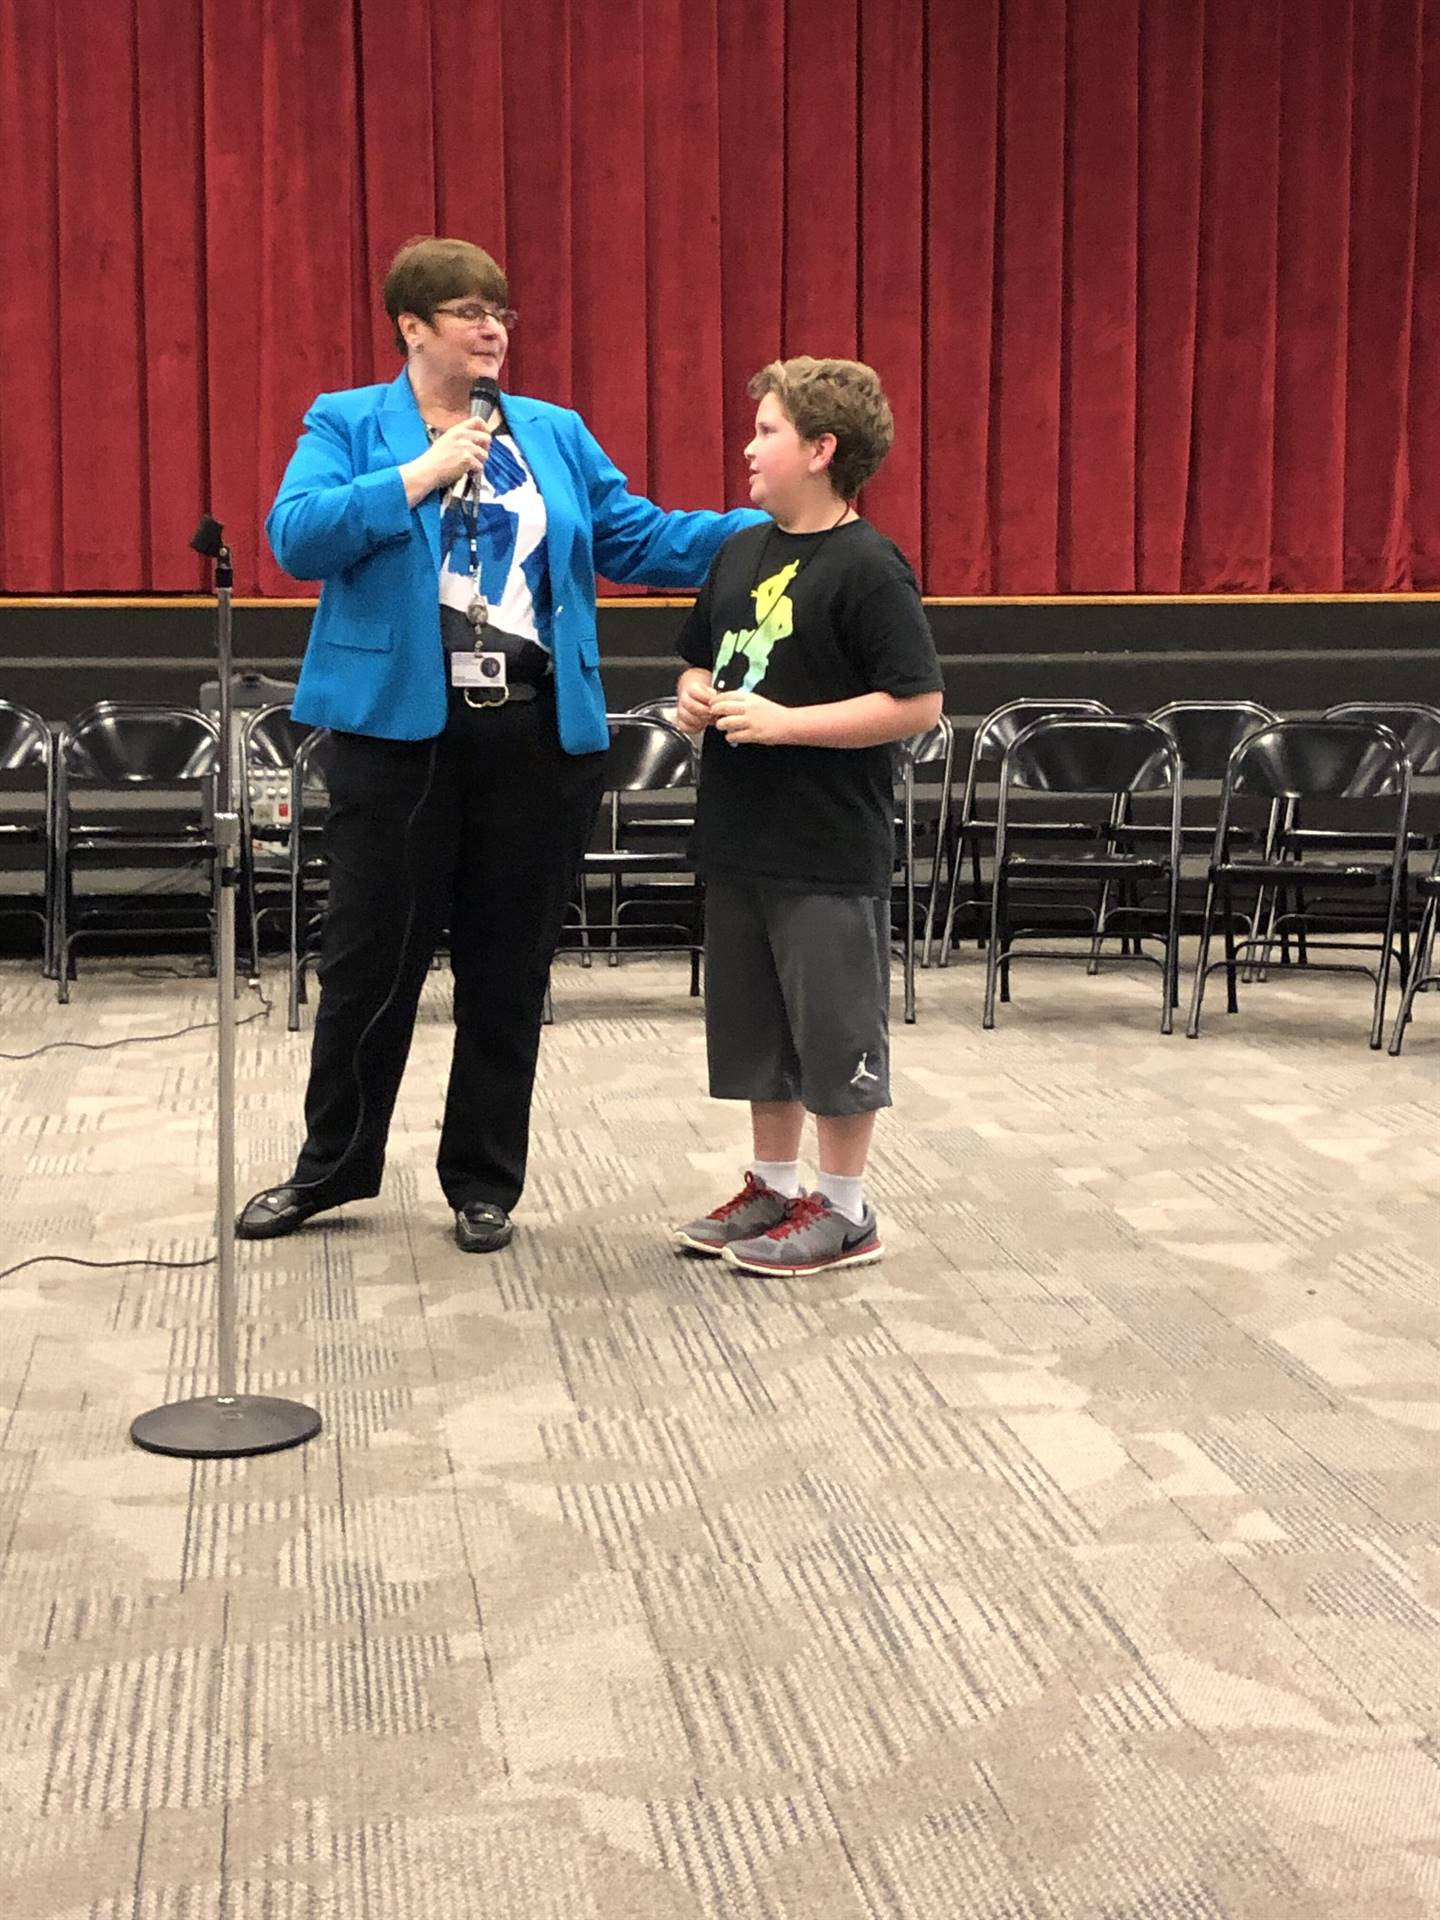 Ms. O'Rourke with the third place speller